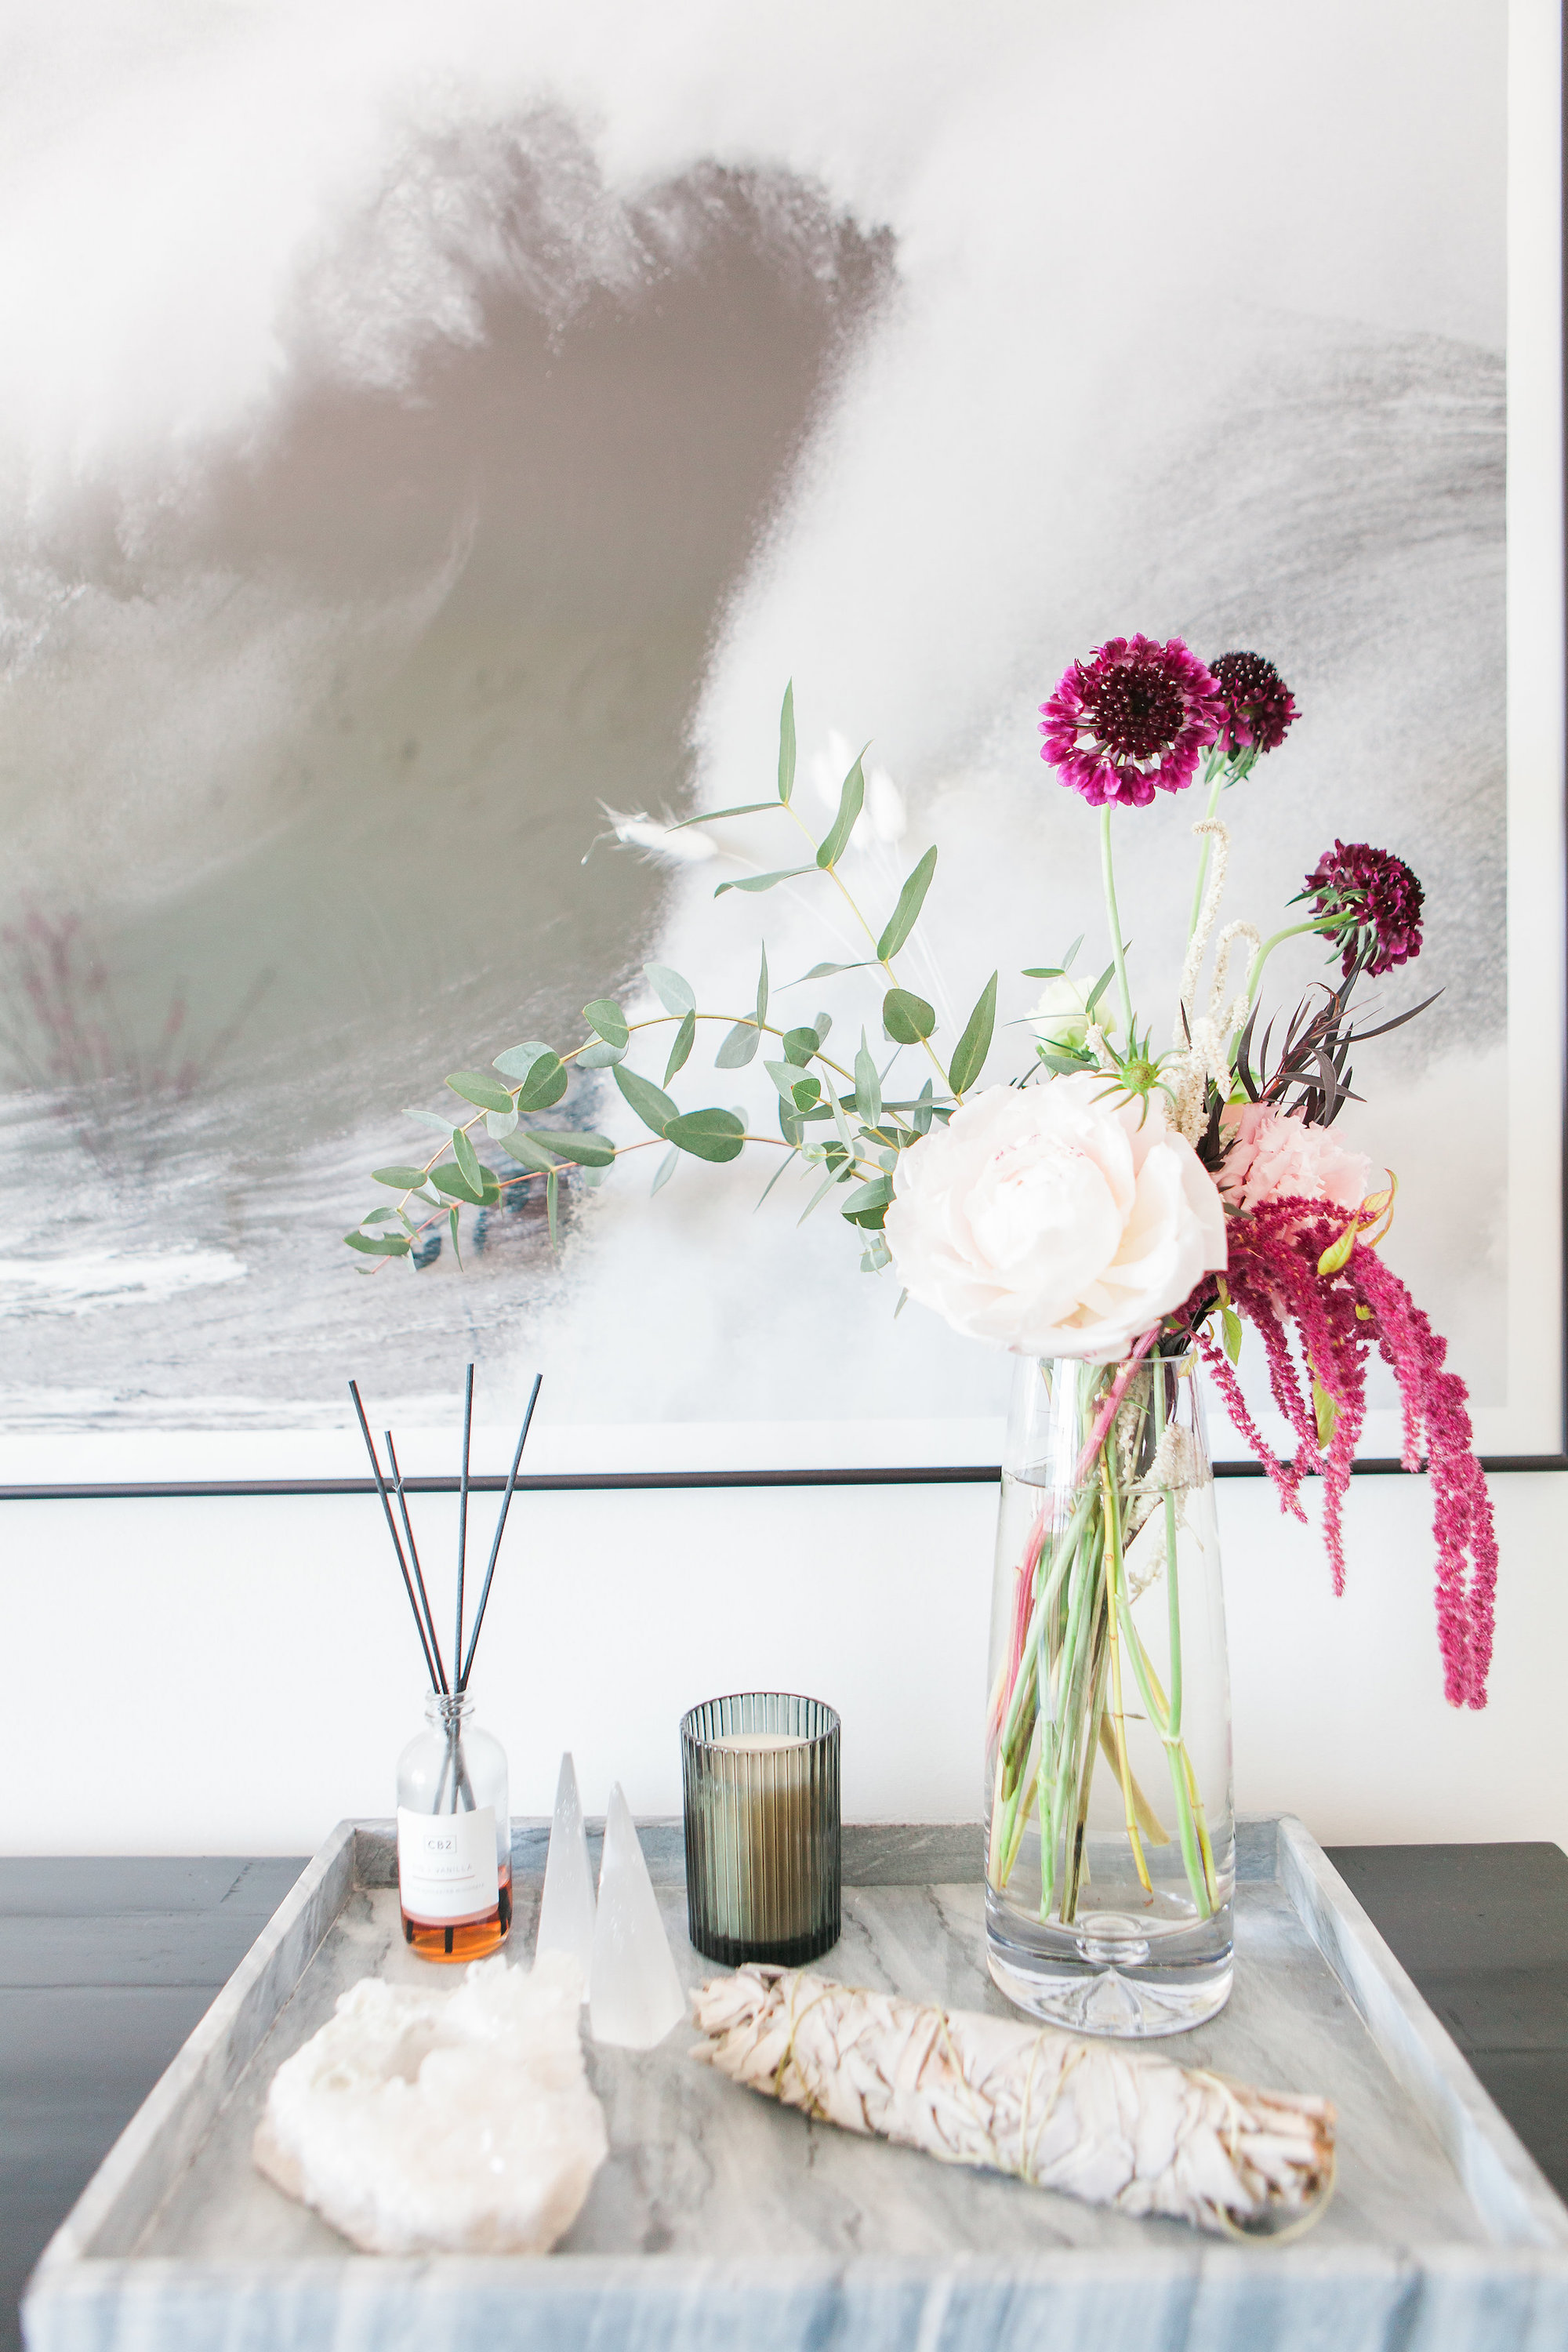 Los Angeles based interior designer for cool, casual living